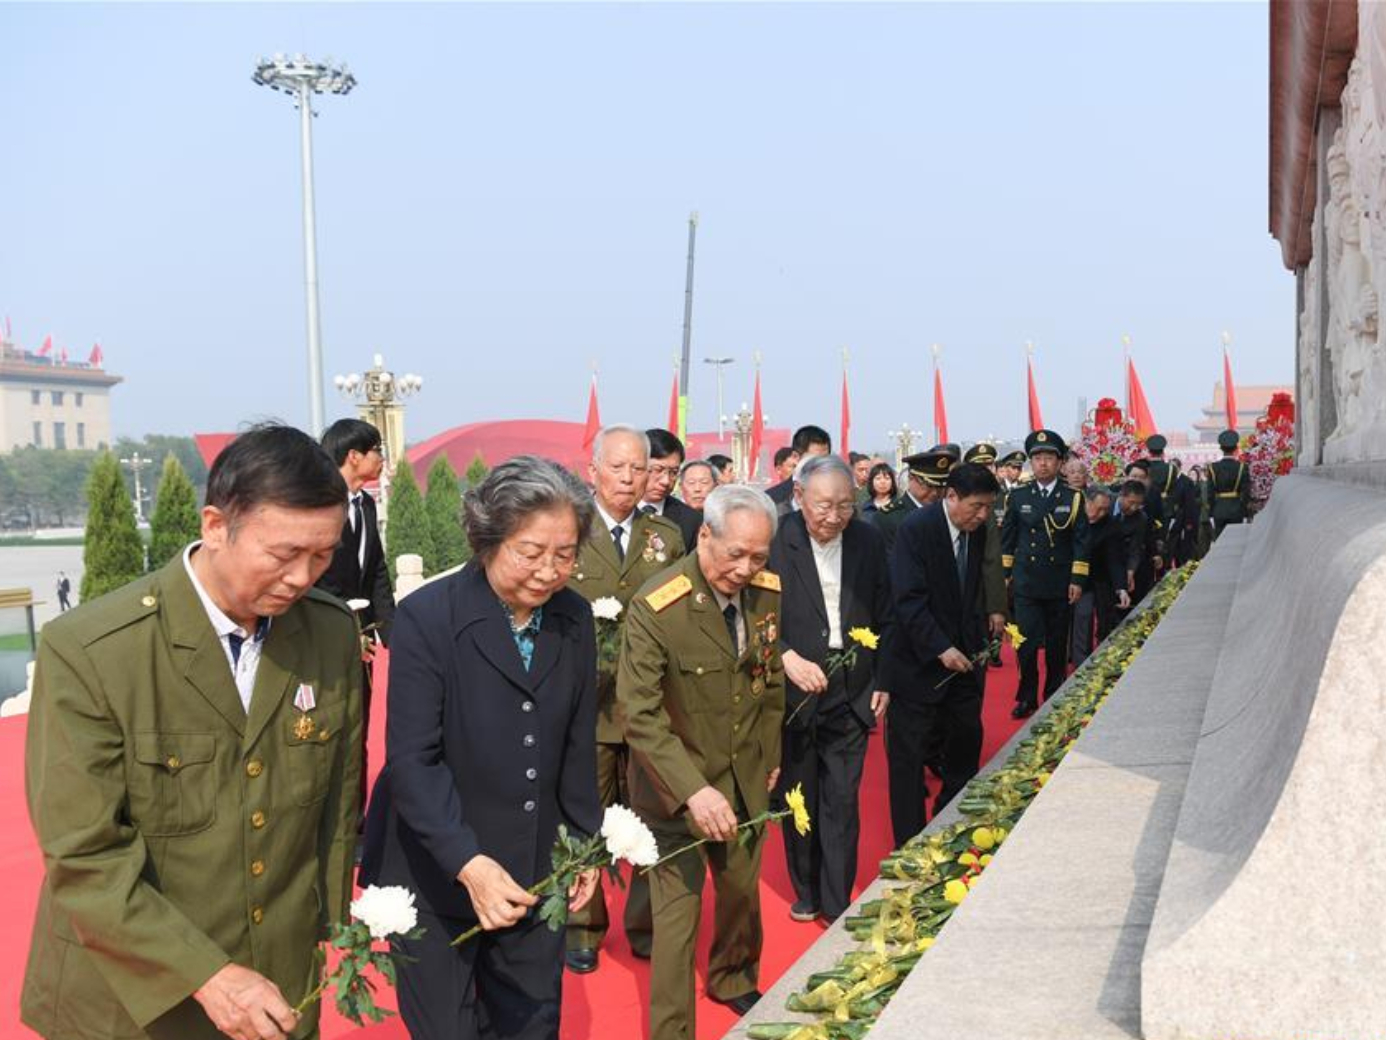 More than 4,000 representatives of public pay tribute to national heroes